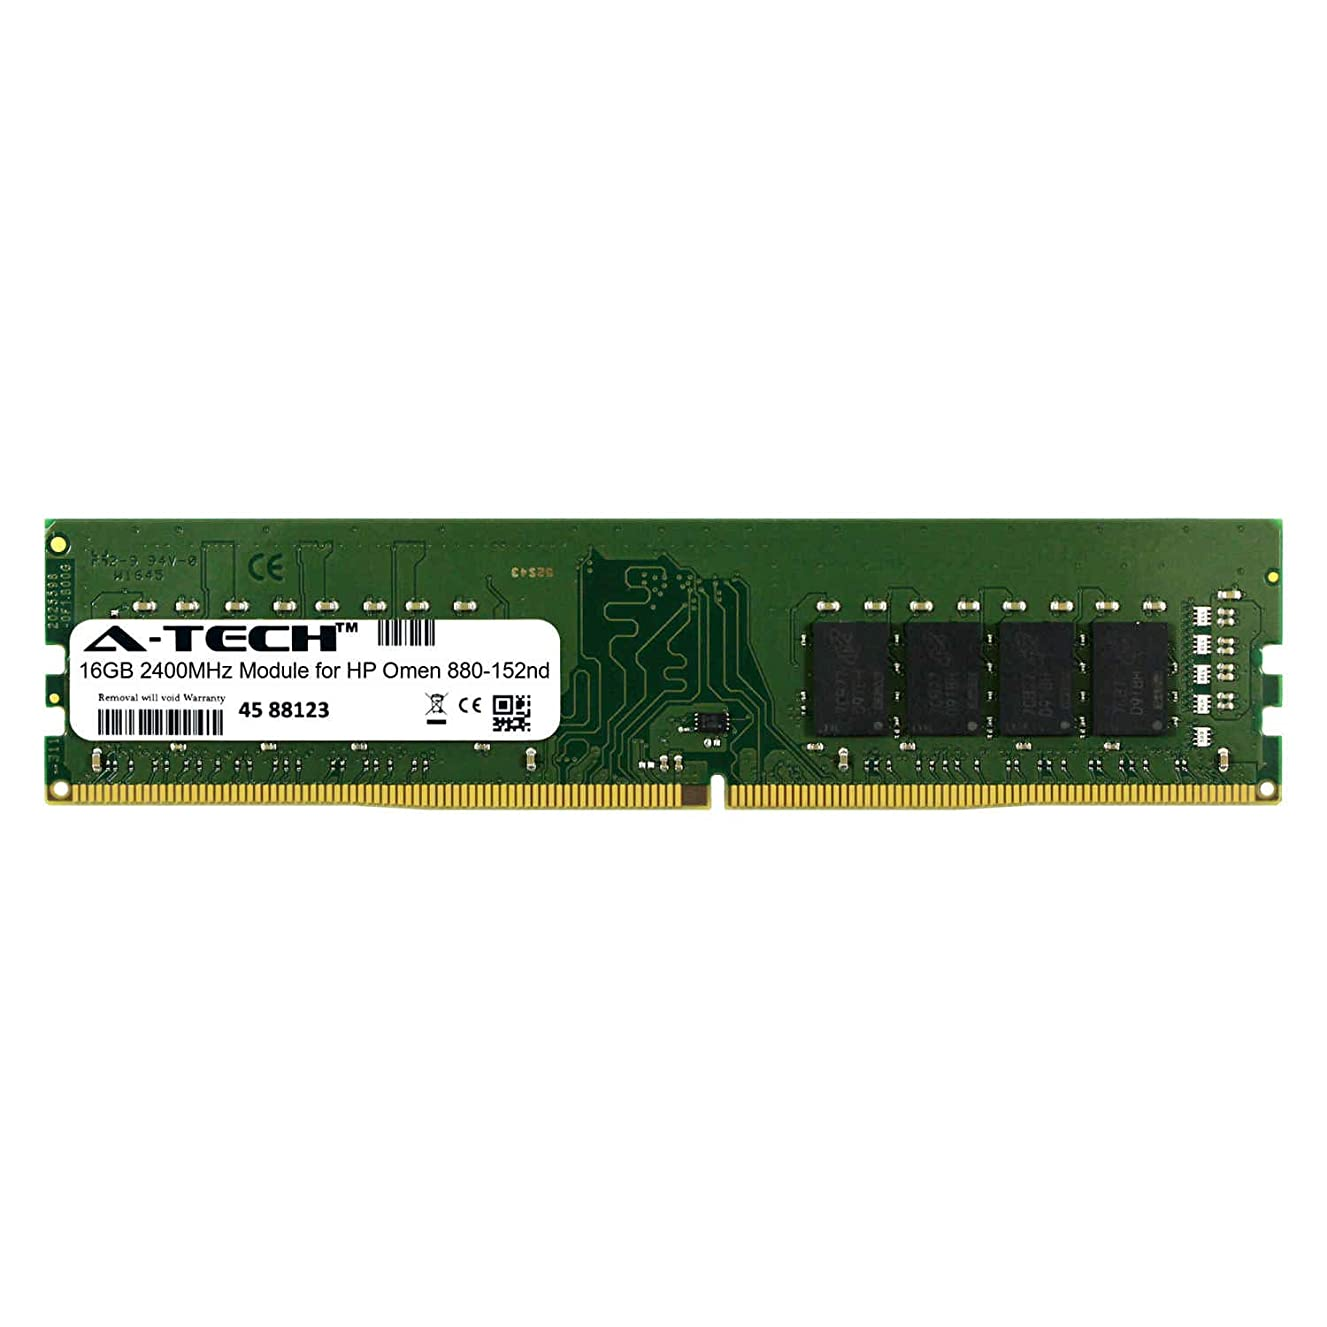 A-Tech 16GB Module for HP Omen 880-152nd Desktop & Workstation Motherboard Compatible DDR4 2400Mhz Memory Ram (ATMS282787A25822X1)